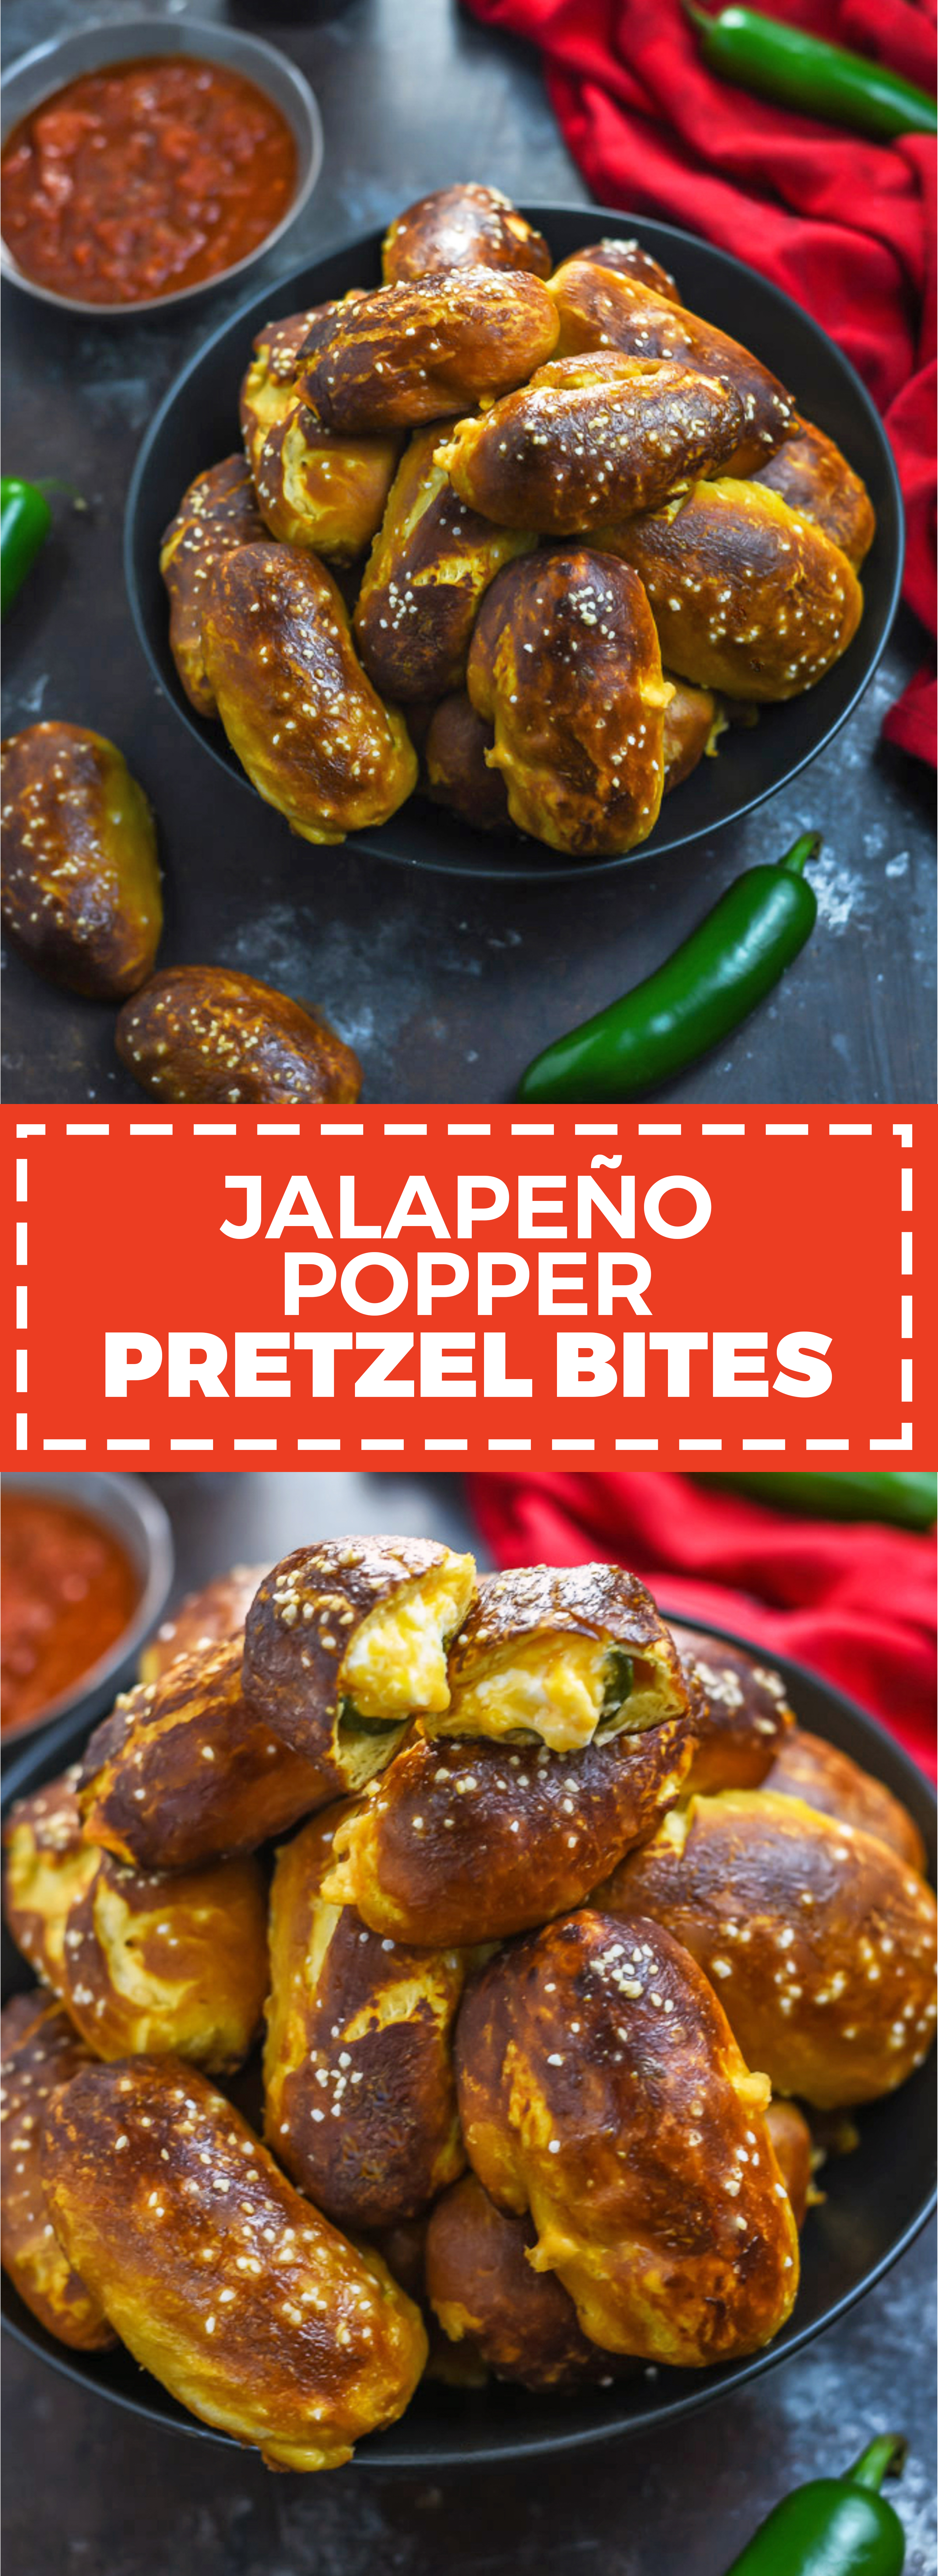 Jalapeño Popper Pretzel Bites. These cheesy, spicy party appetizers are so easy to make thanks to a premade dough shortcut! A video in the post shows exactly how it's done. | hostthetoast.com